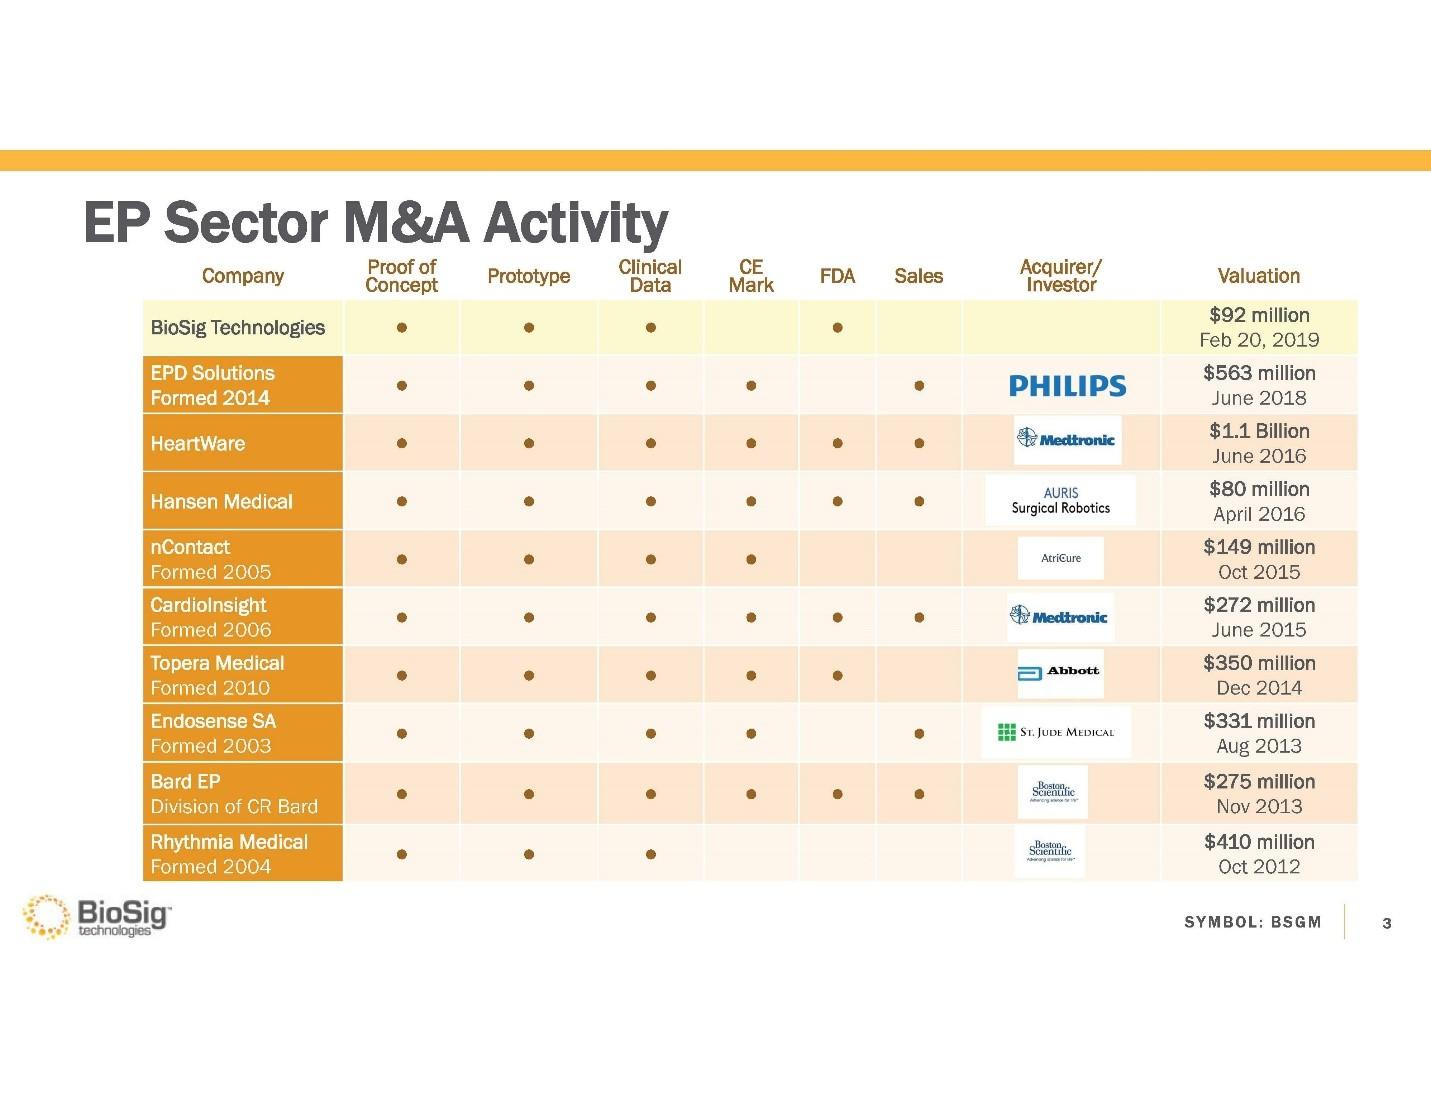 here's a more up to date listing of ep sector m&a activity: